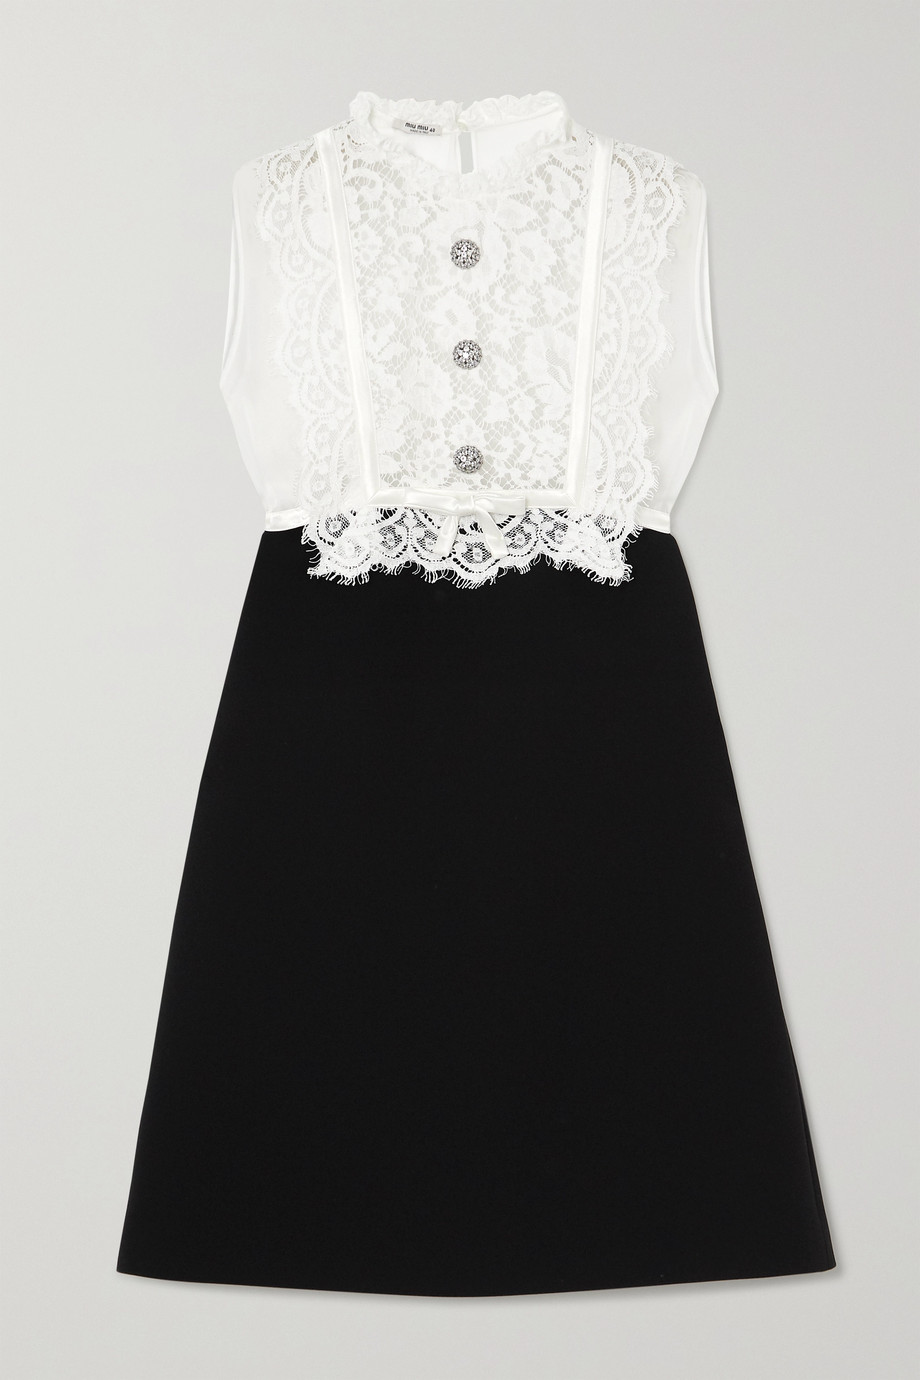 Miu Miu Crystal-embellished lace, georgette and cady mini dress